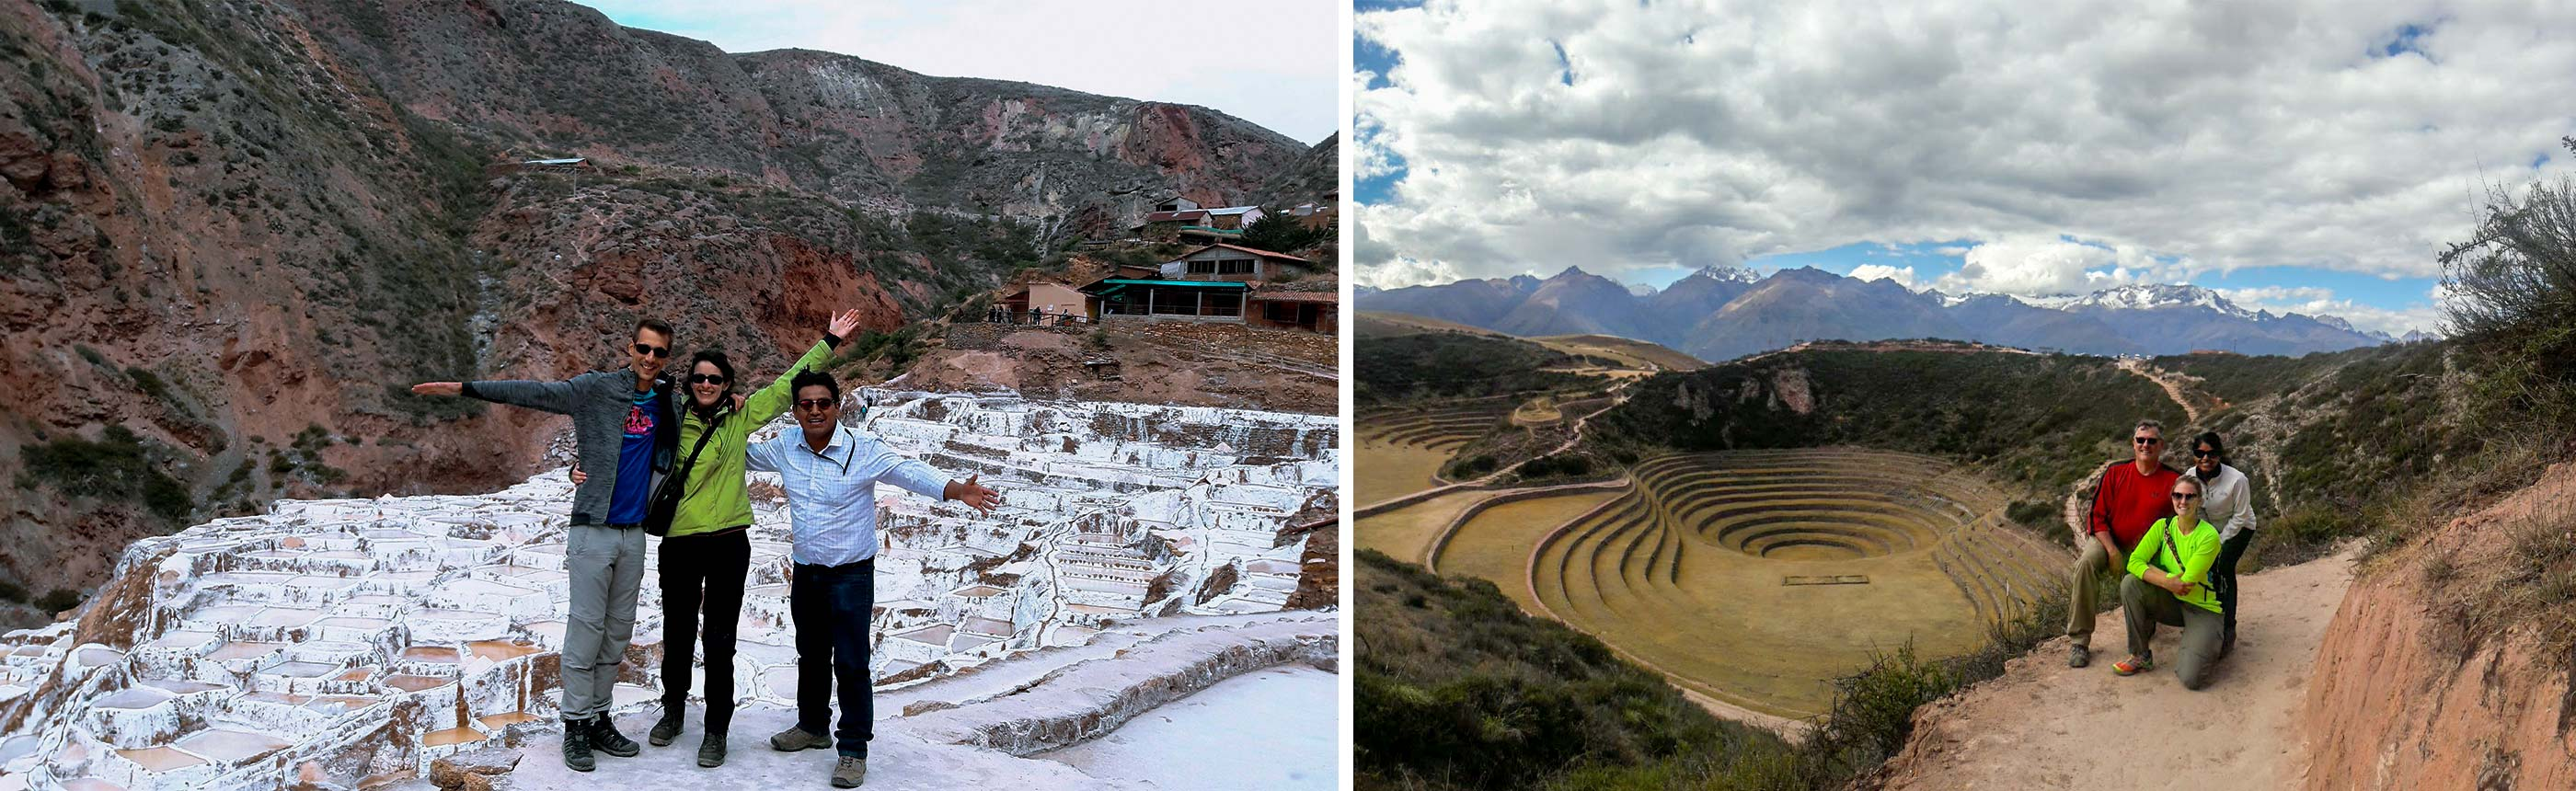 Extended Tour to sacred valley of the Incas